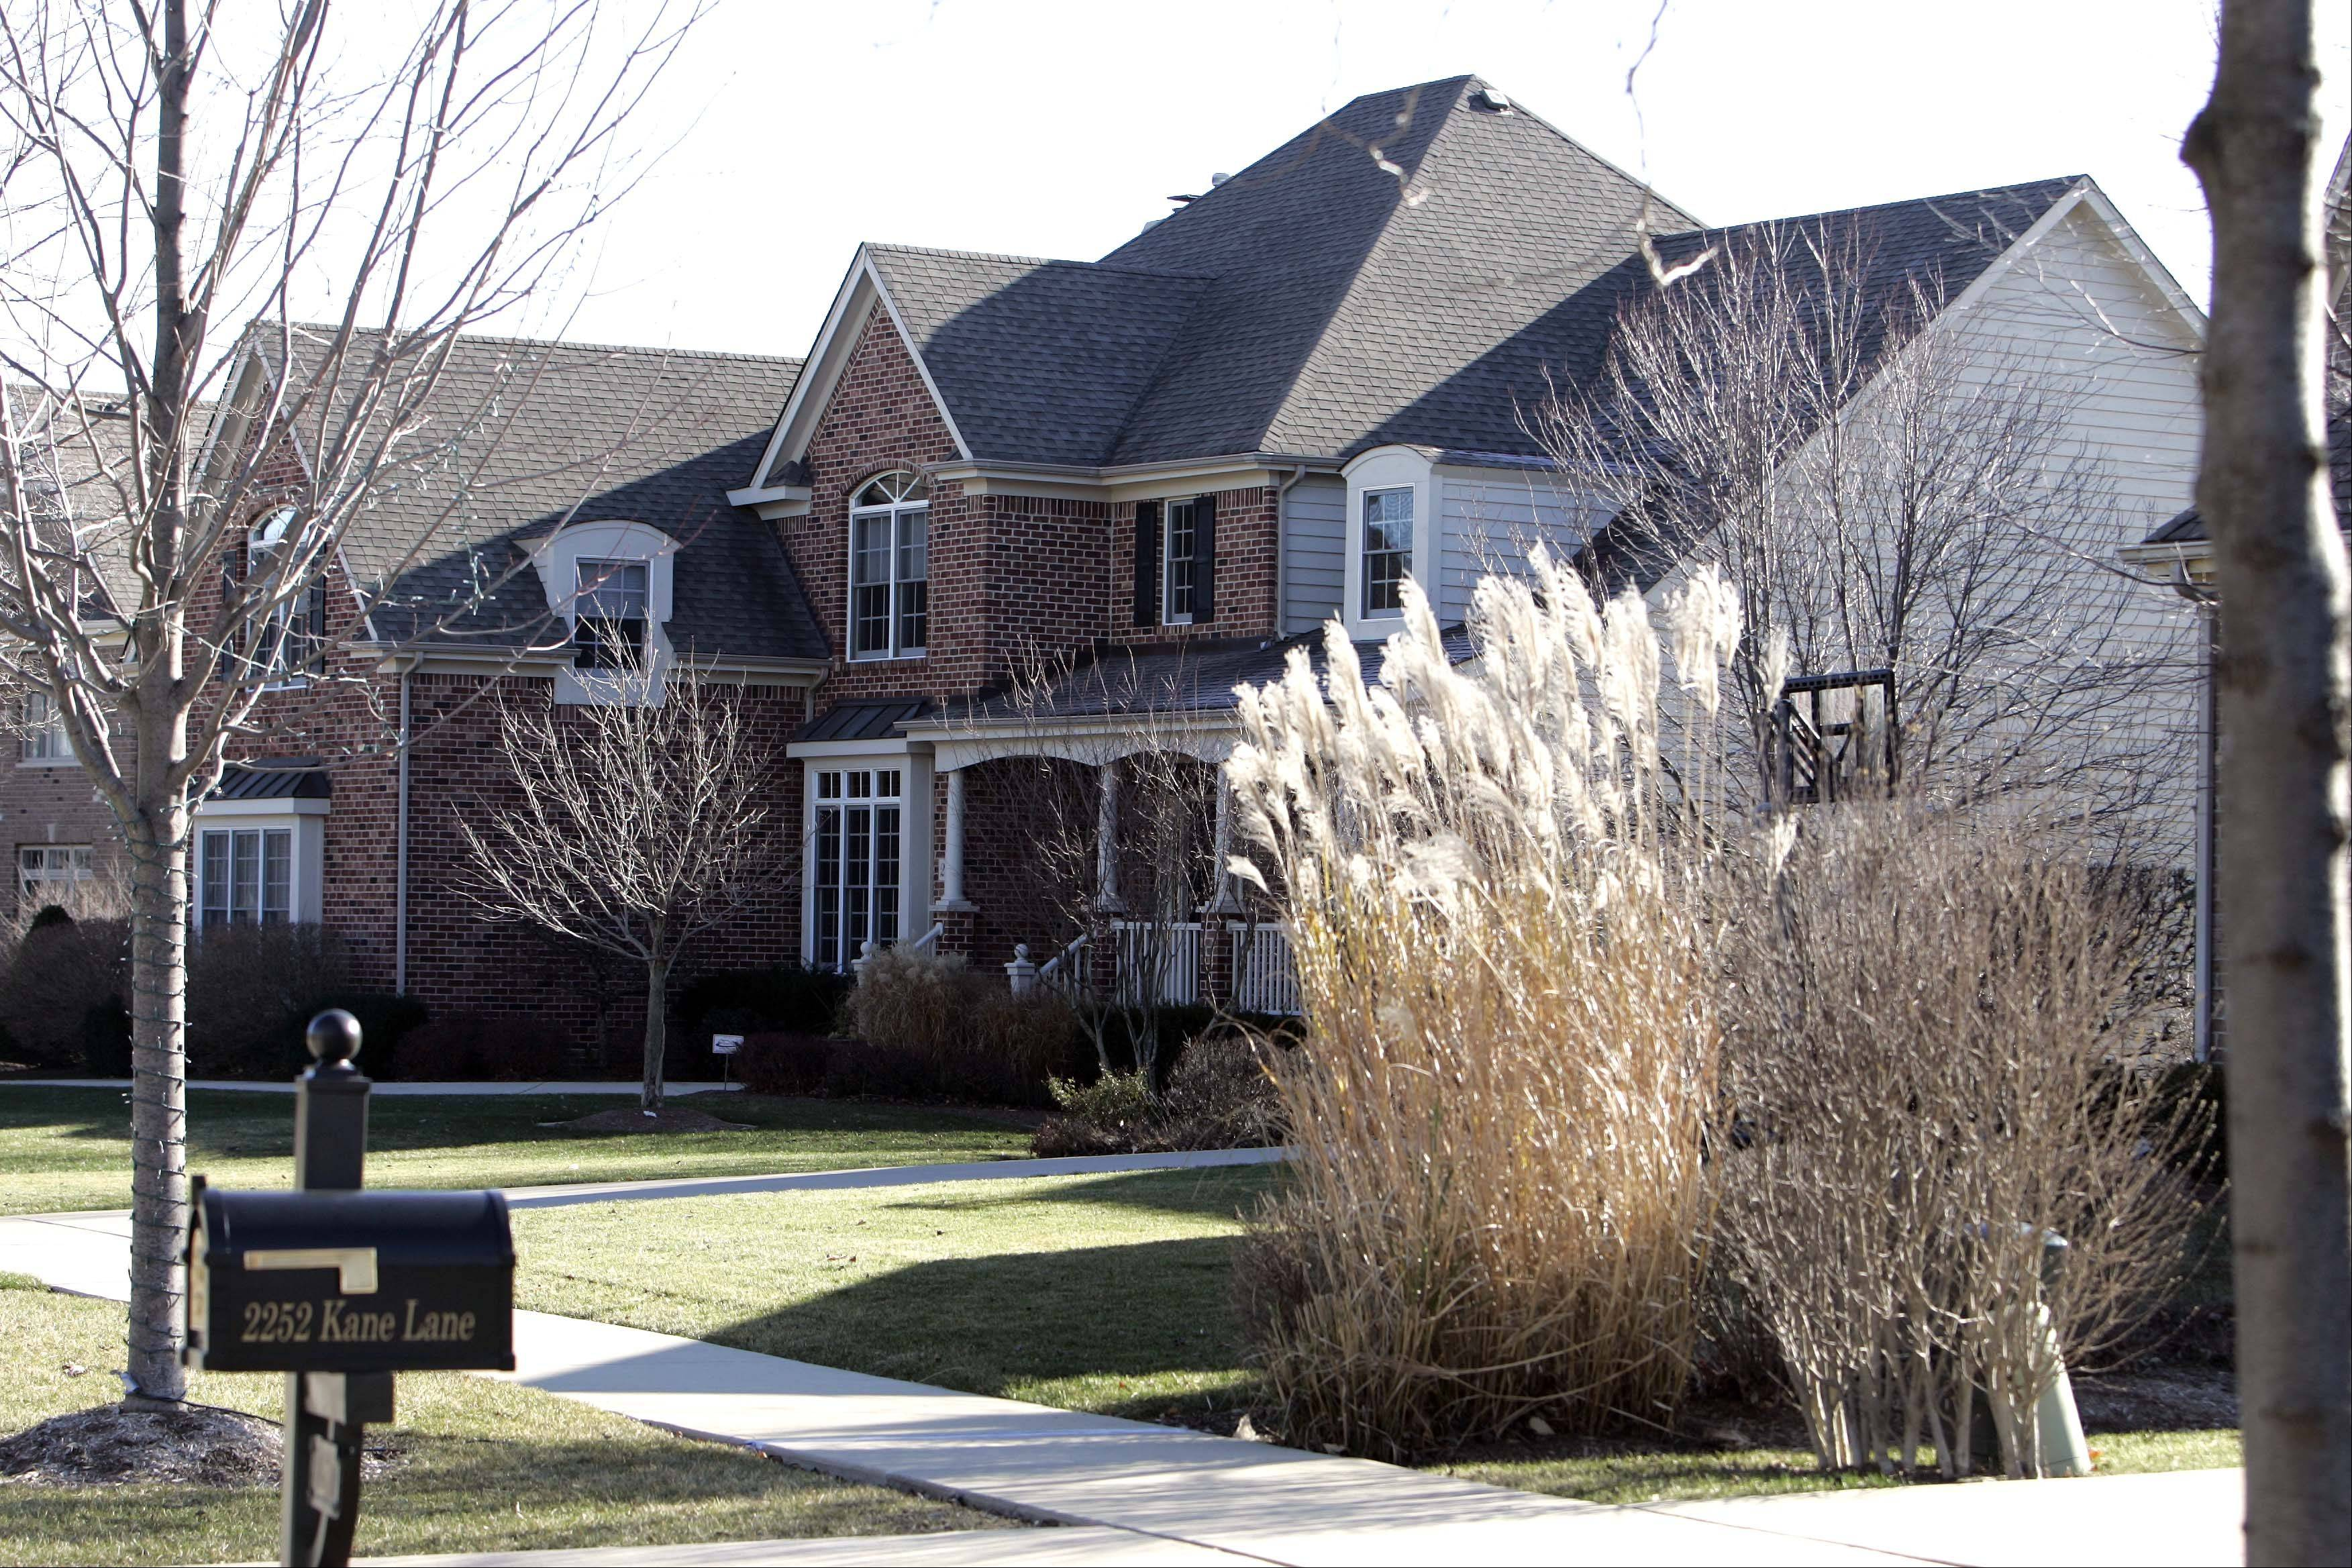 The homes along Kane Lane show a range of landscaping in Tanglewood Hills in Batavia.